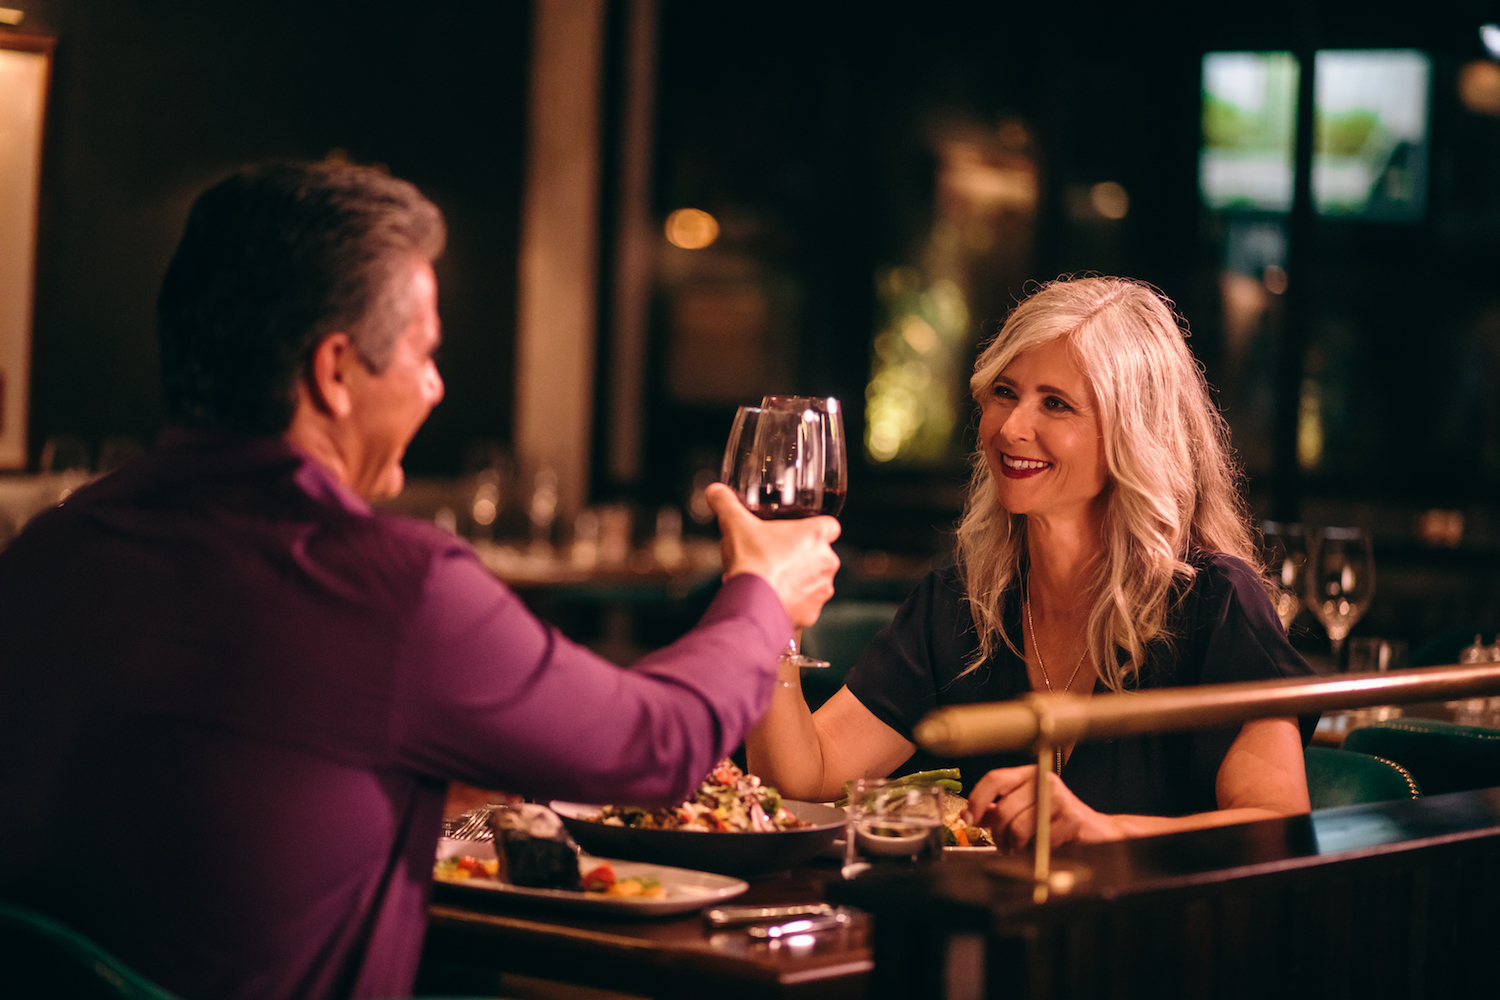 Senior couple in love toasting with red wine and having dinner at fine dining restaurant